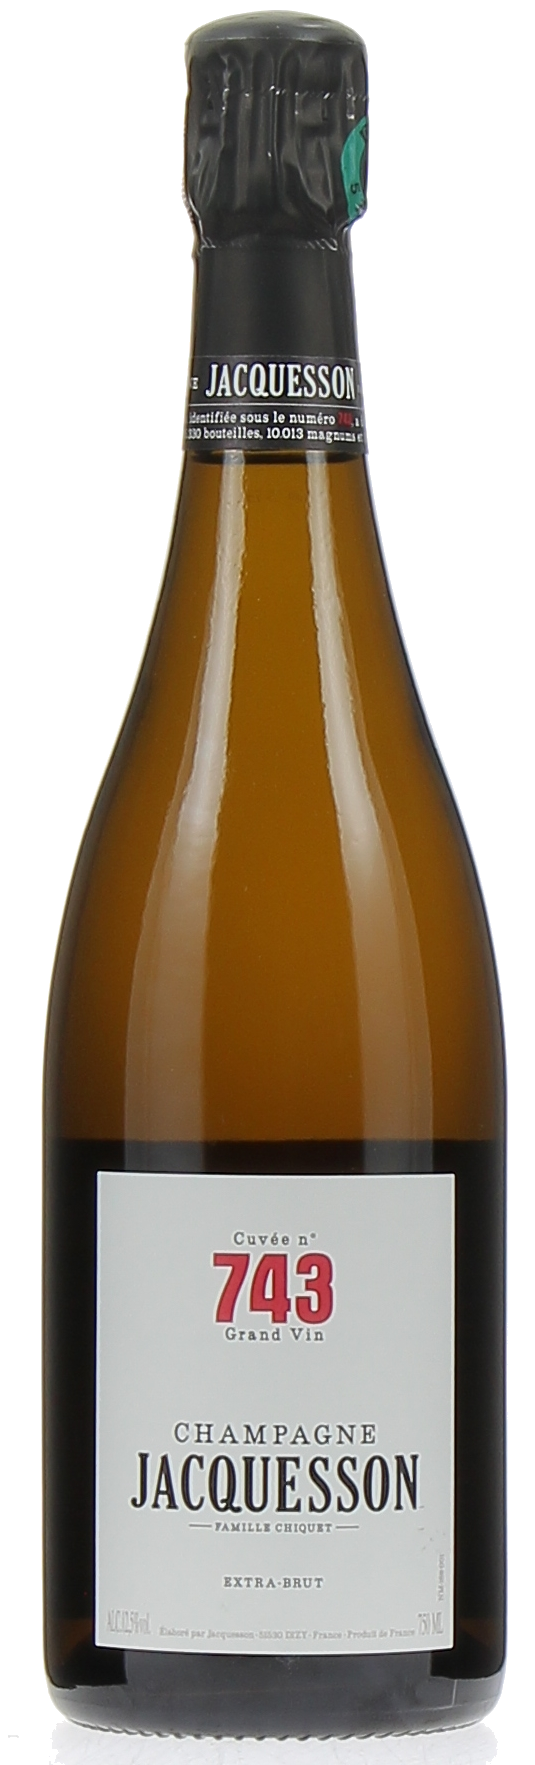 Champagne Jacquesson Cuvee 743